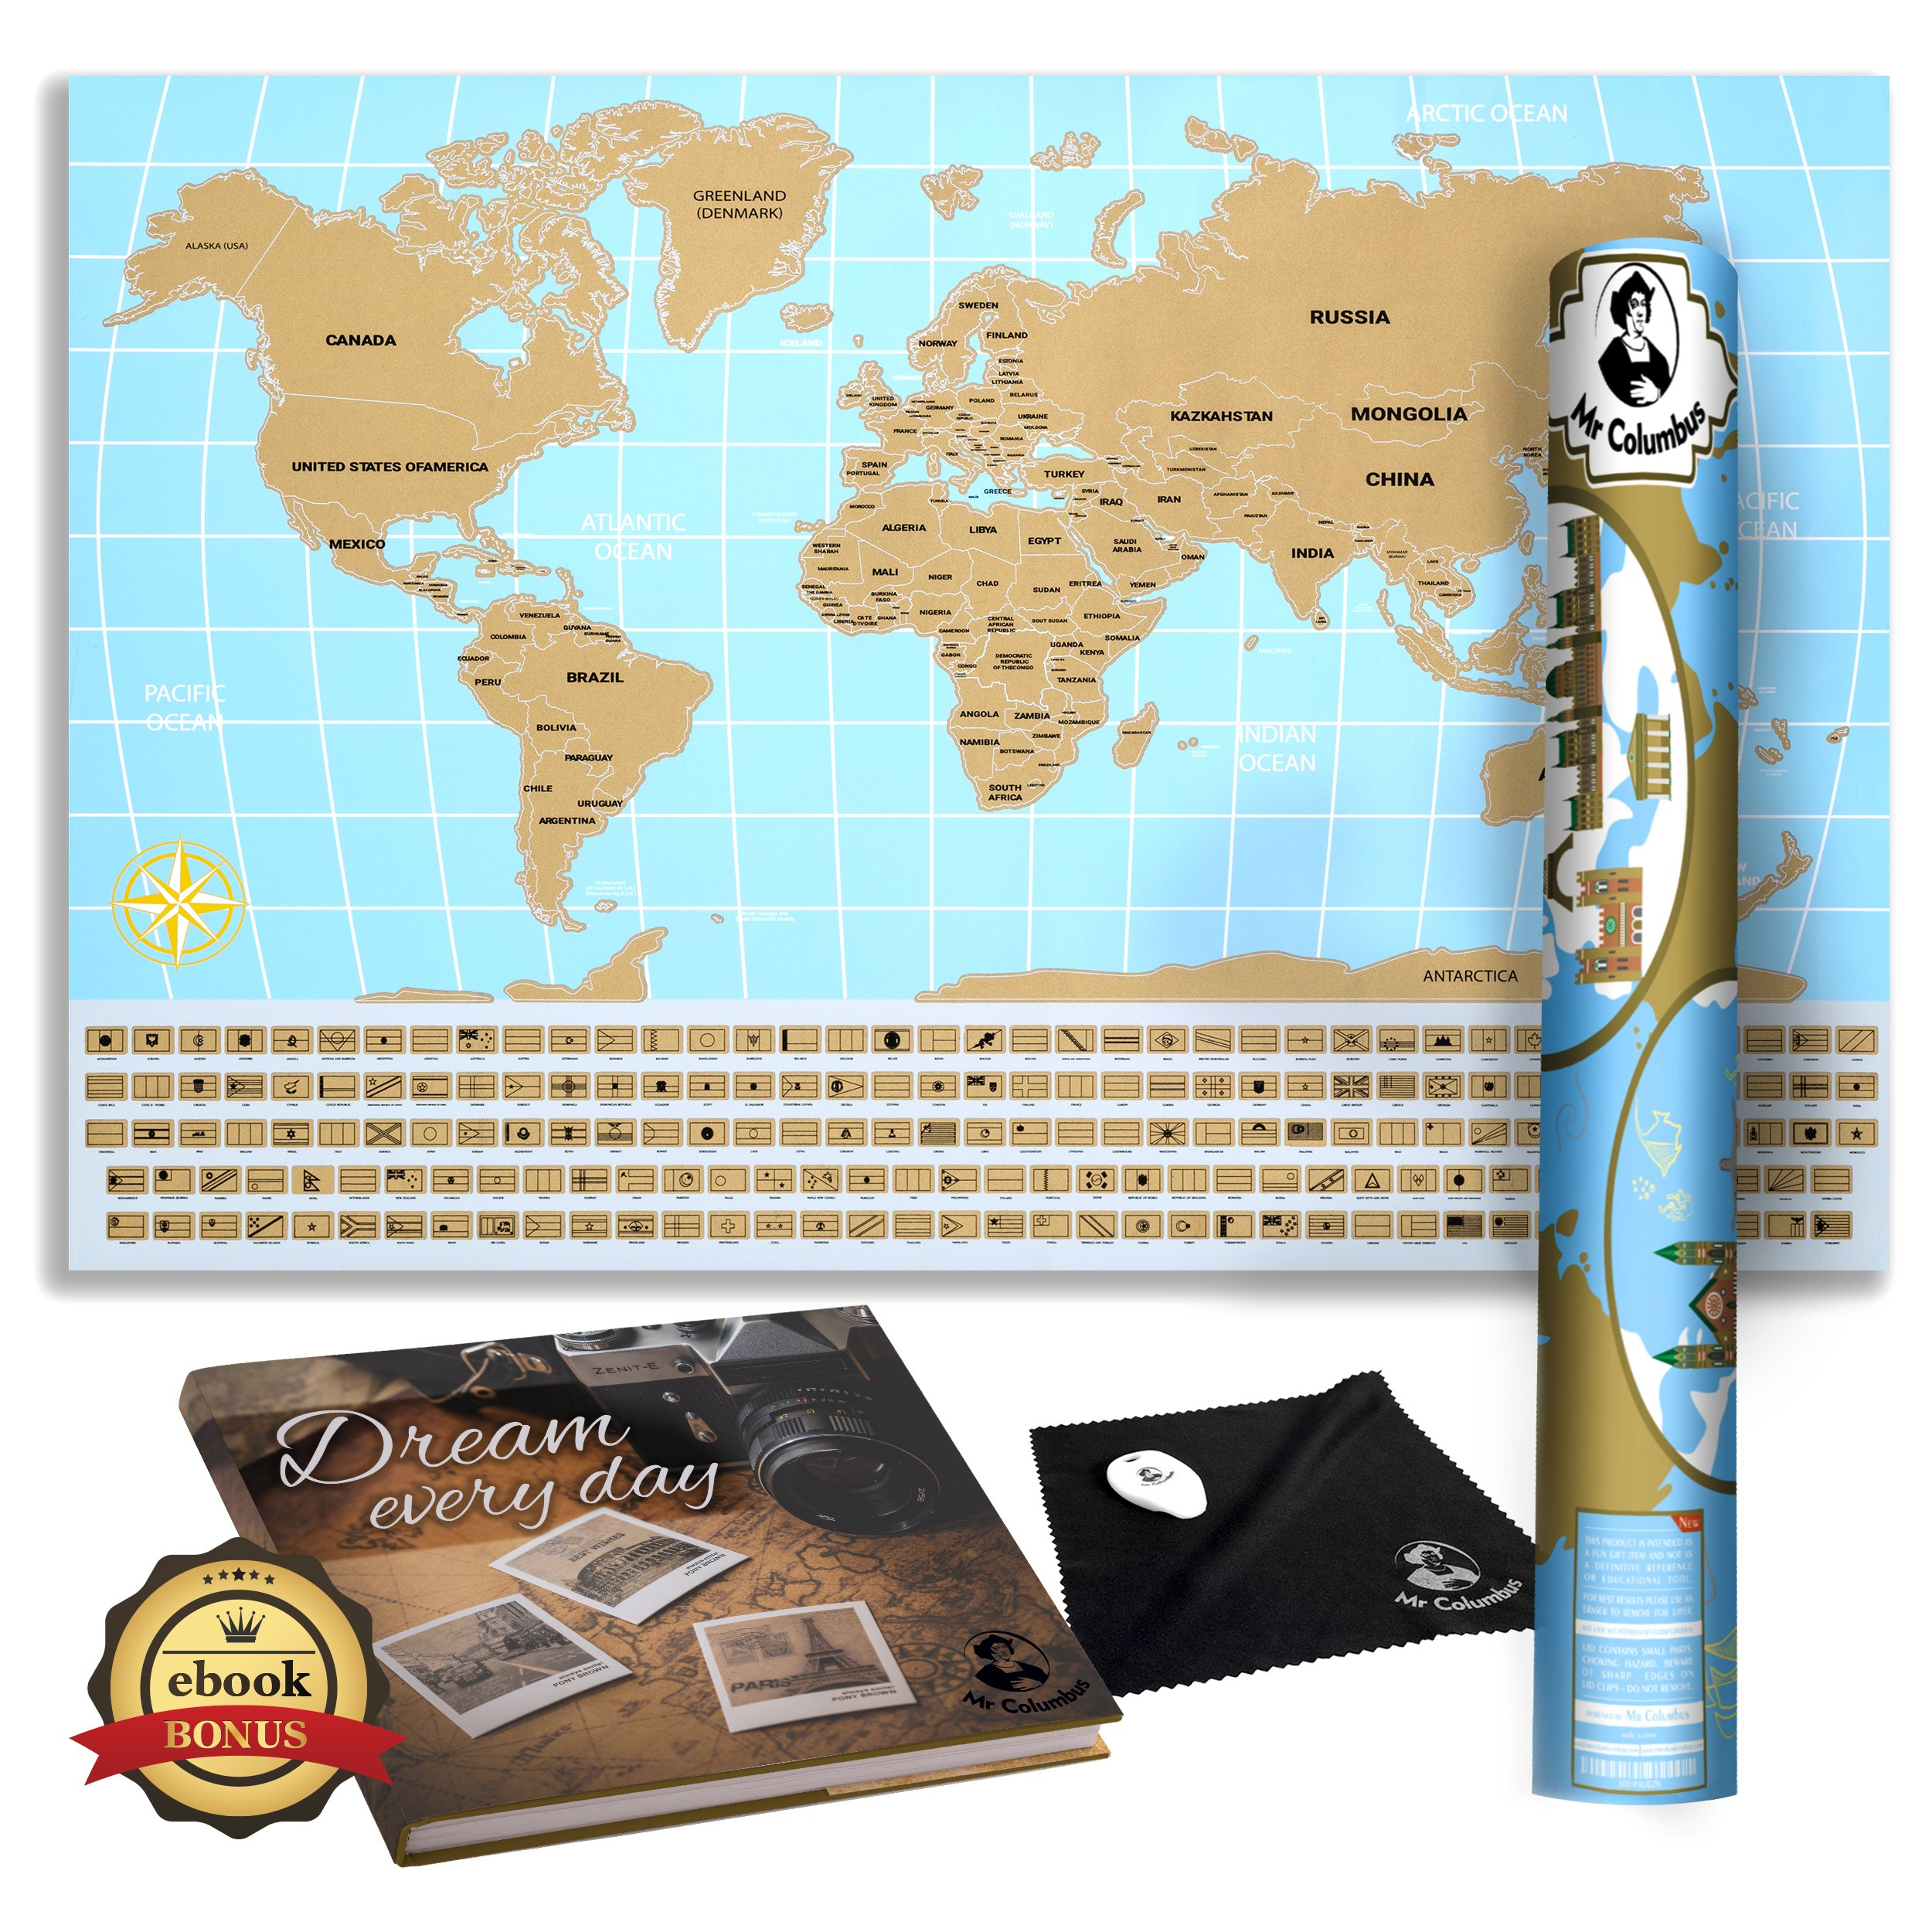 Details about Mr Columbus Scratch Off World Map Poster – with Country  Flags, for Travel,